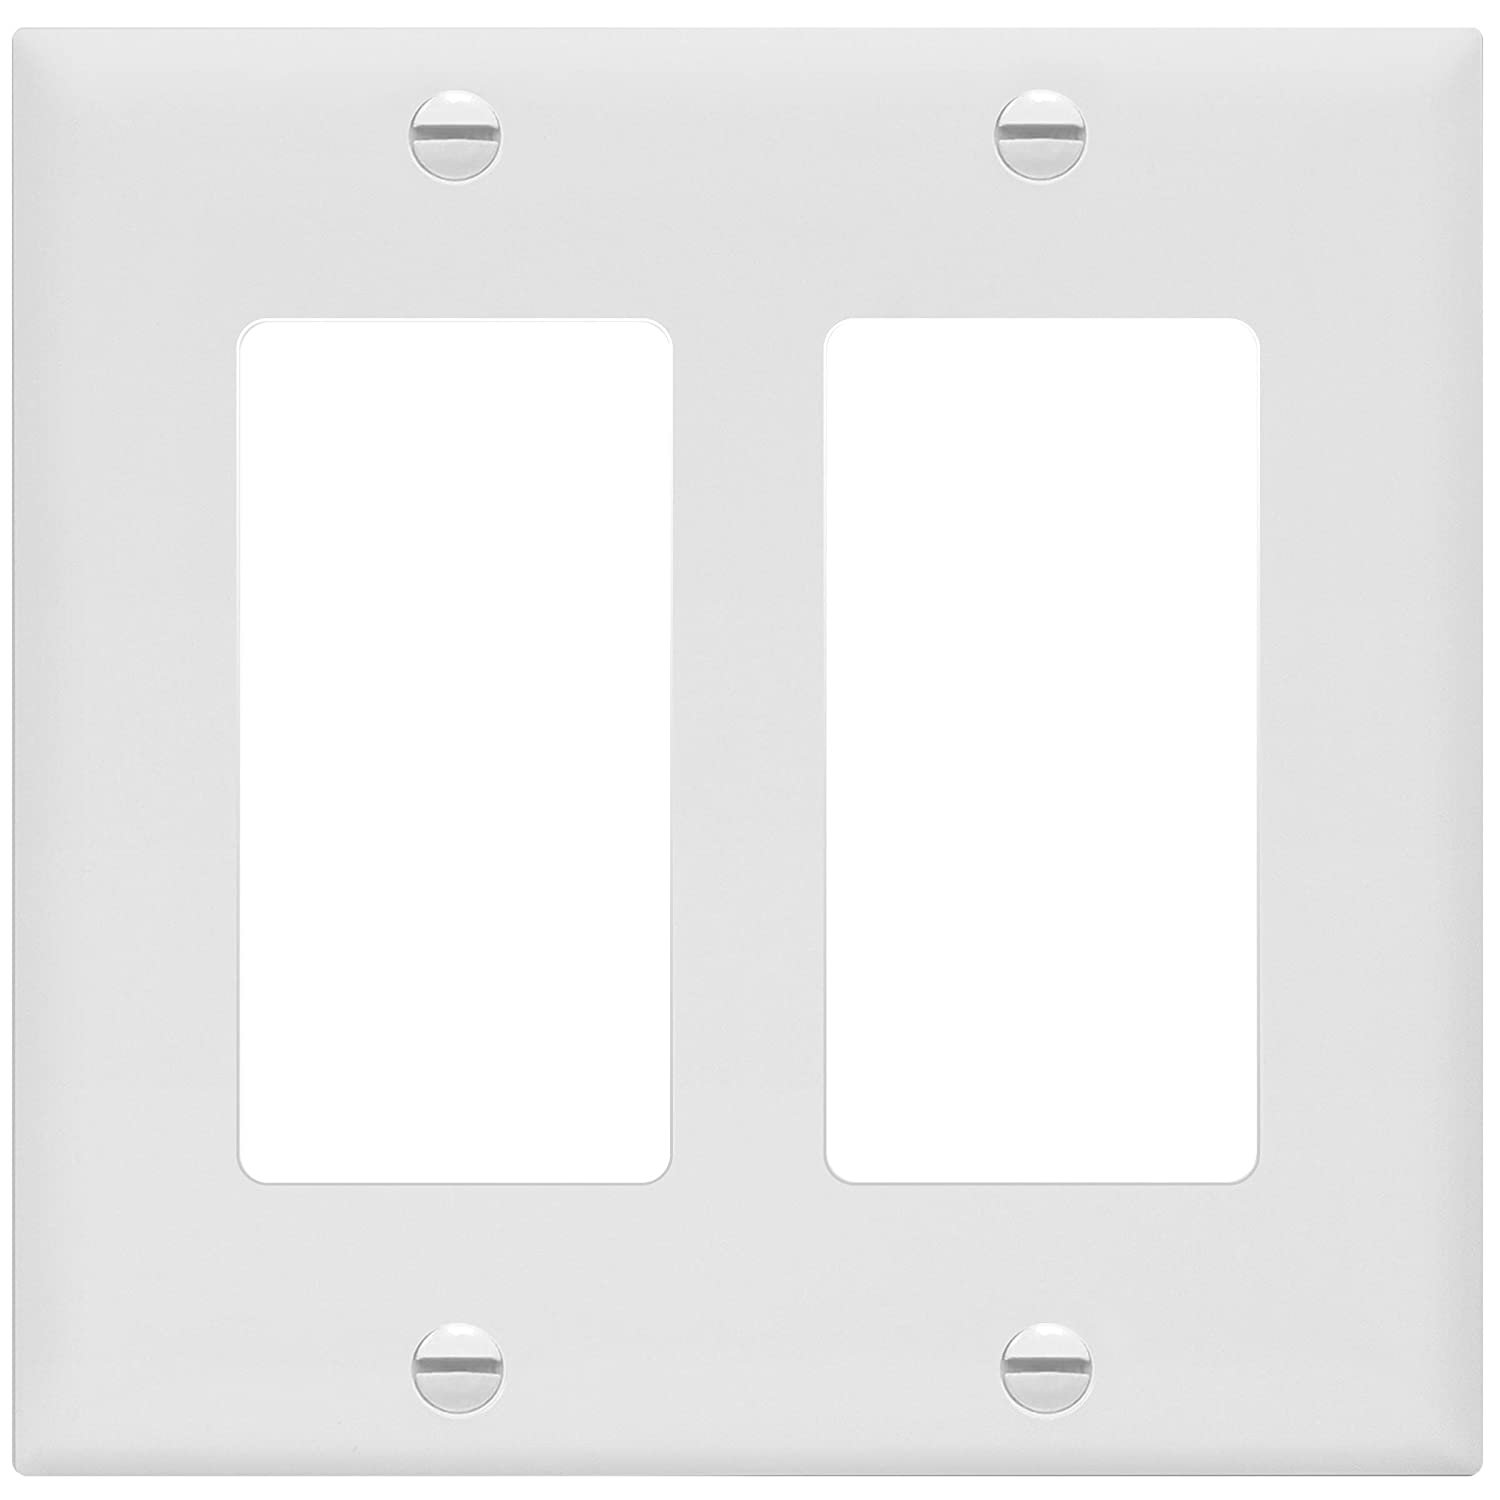 "ENERLITES Decorator Light Switch or Receptacle Outlet Wall Plate, Size 2-Gang 4.50"" x 4.57"", Unbreakable Polycarbonate Thermoplastic, UL Listed, 8832-W, White"